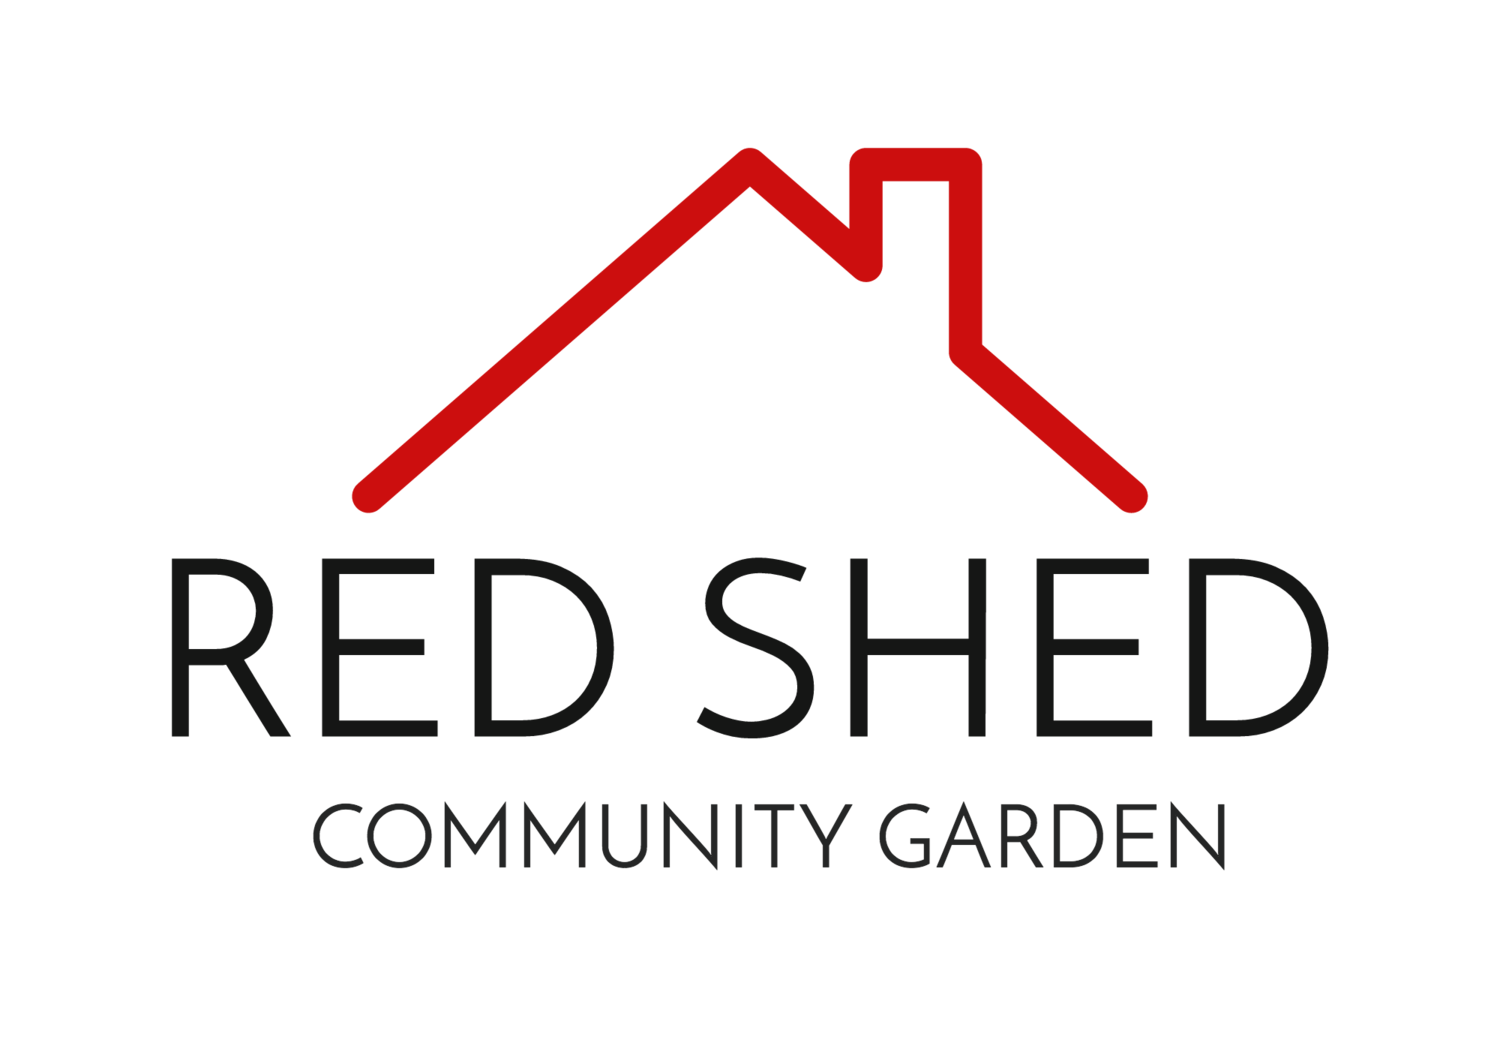 Red Shed Community Garden